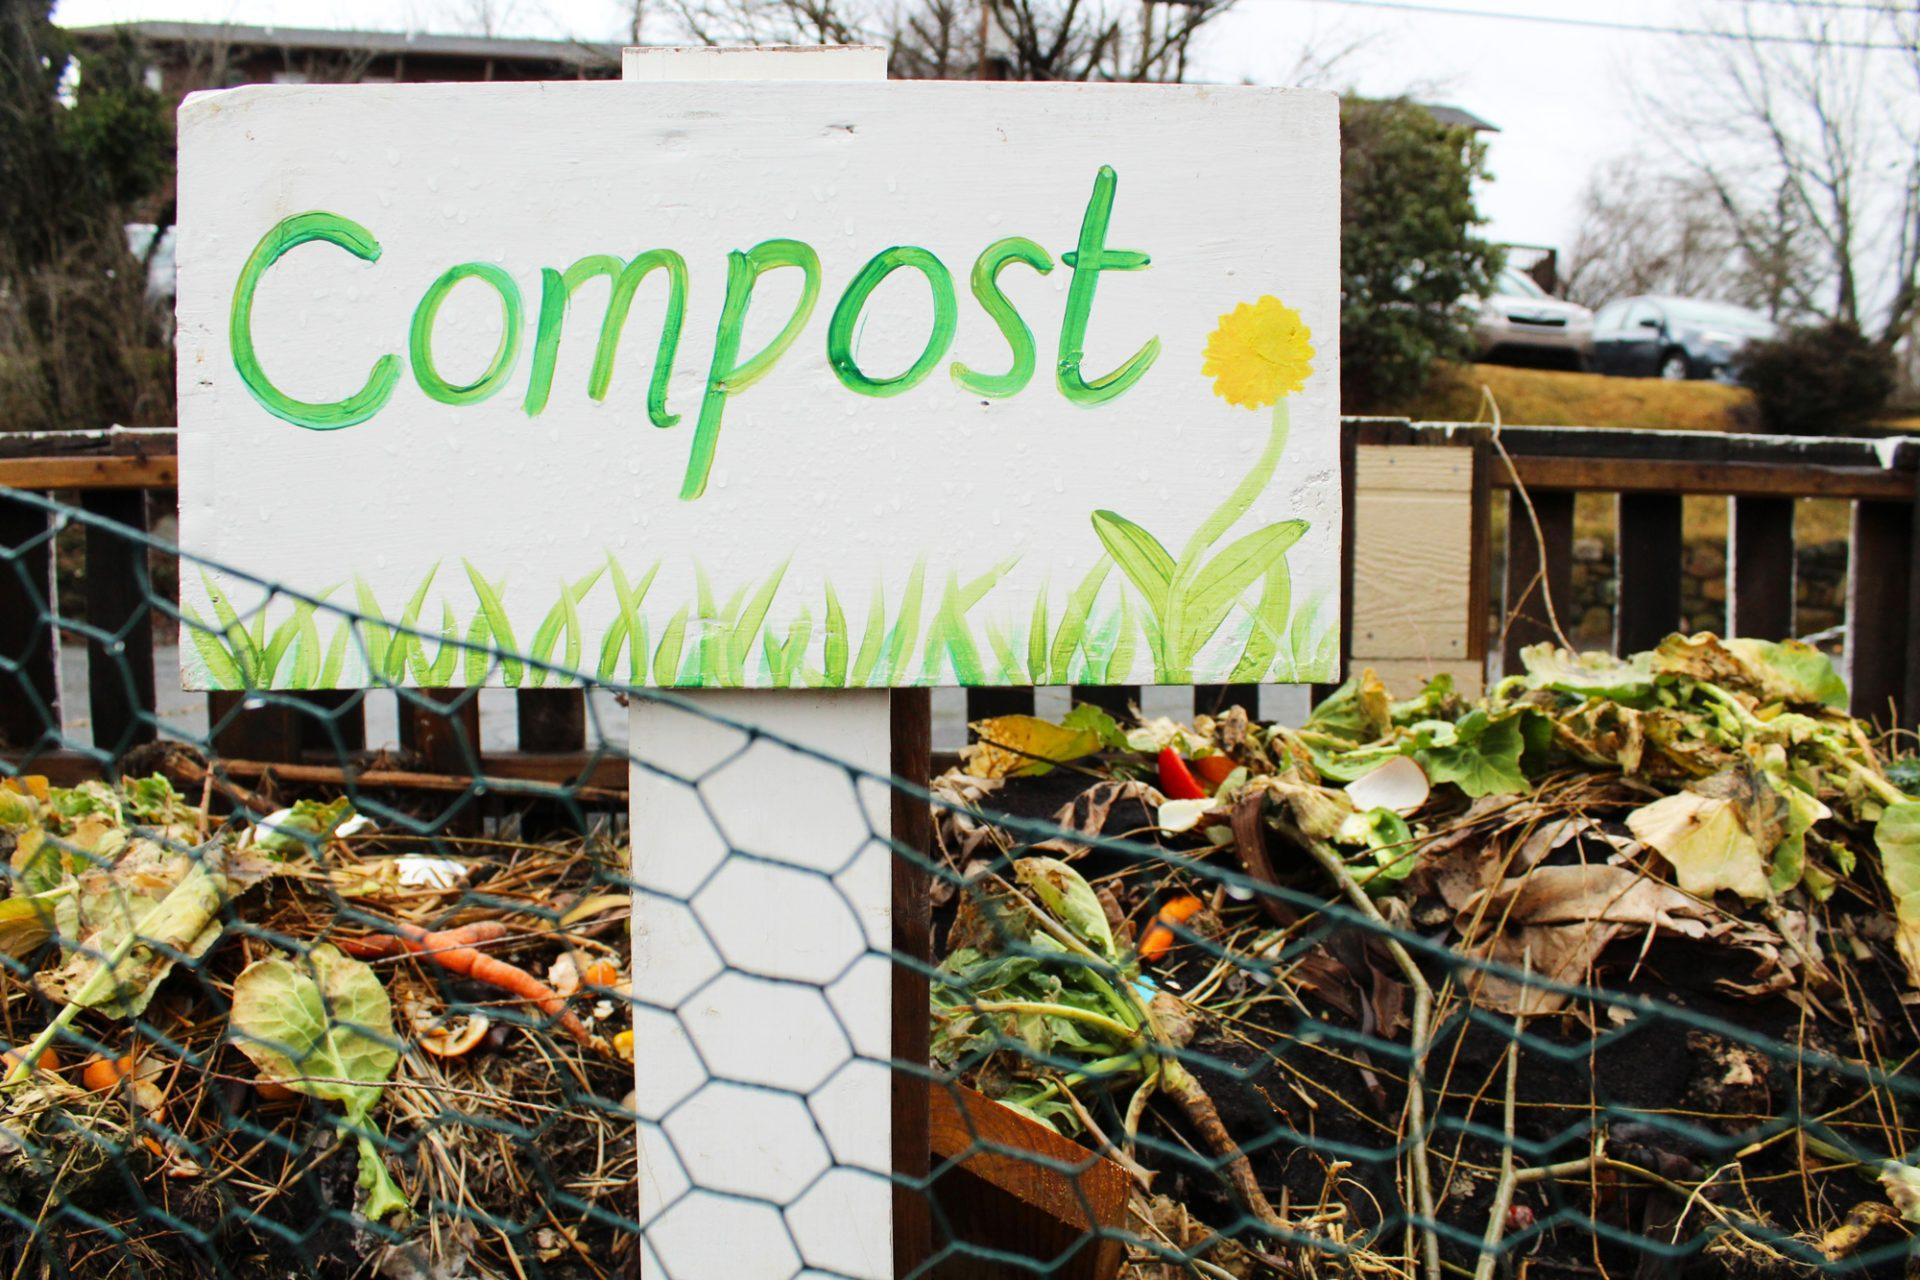 The compost pile at the Appalachian Roots Garden on Howard Street. Students can tend  to the garden most Fridays from 10 a.m. to 2 p.m.